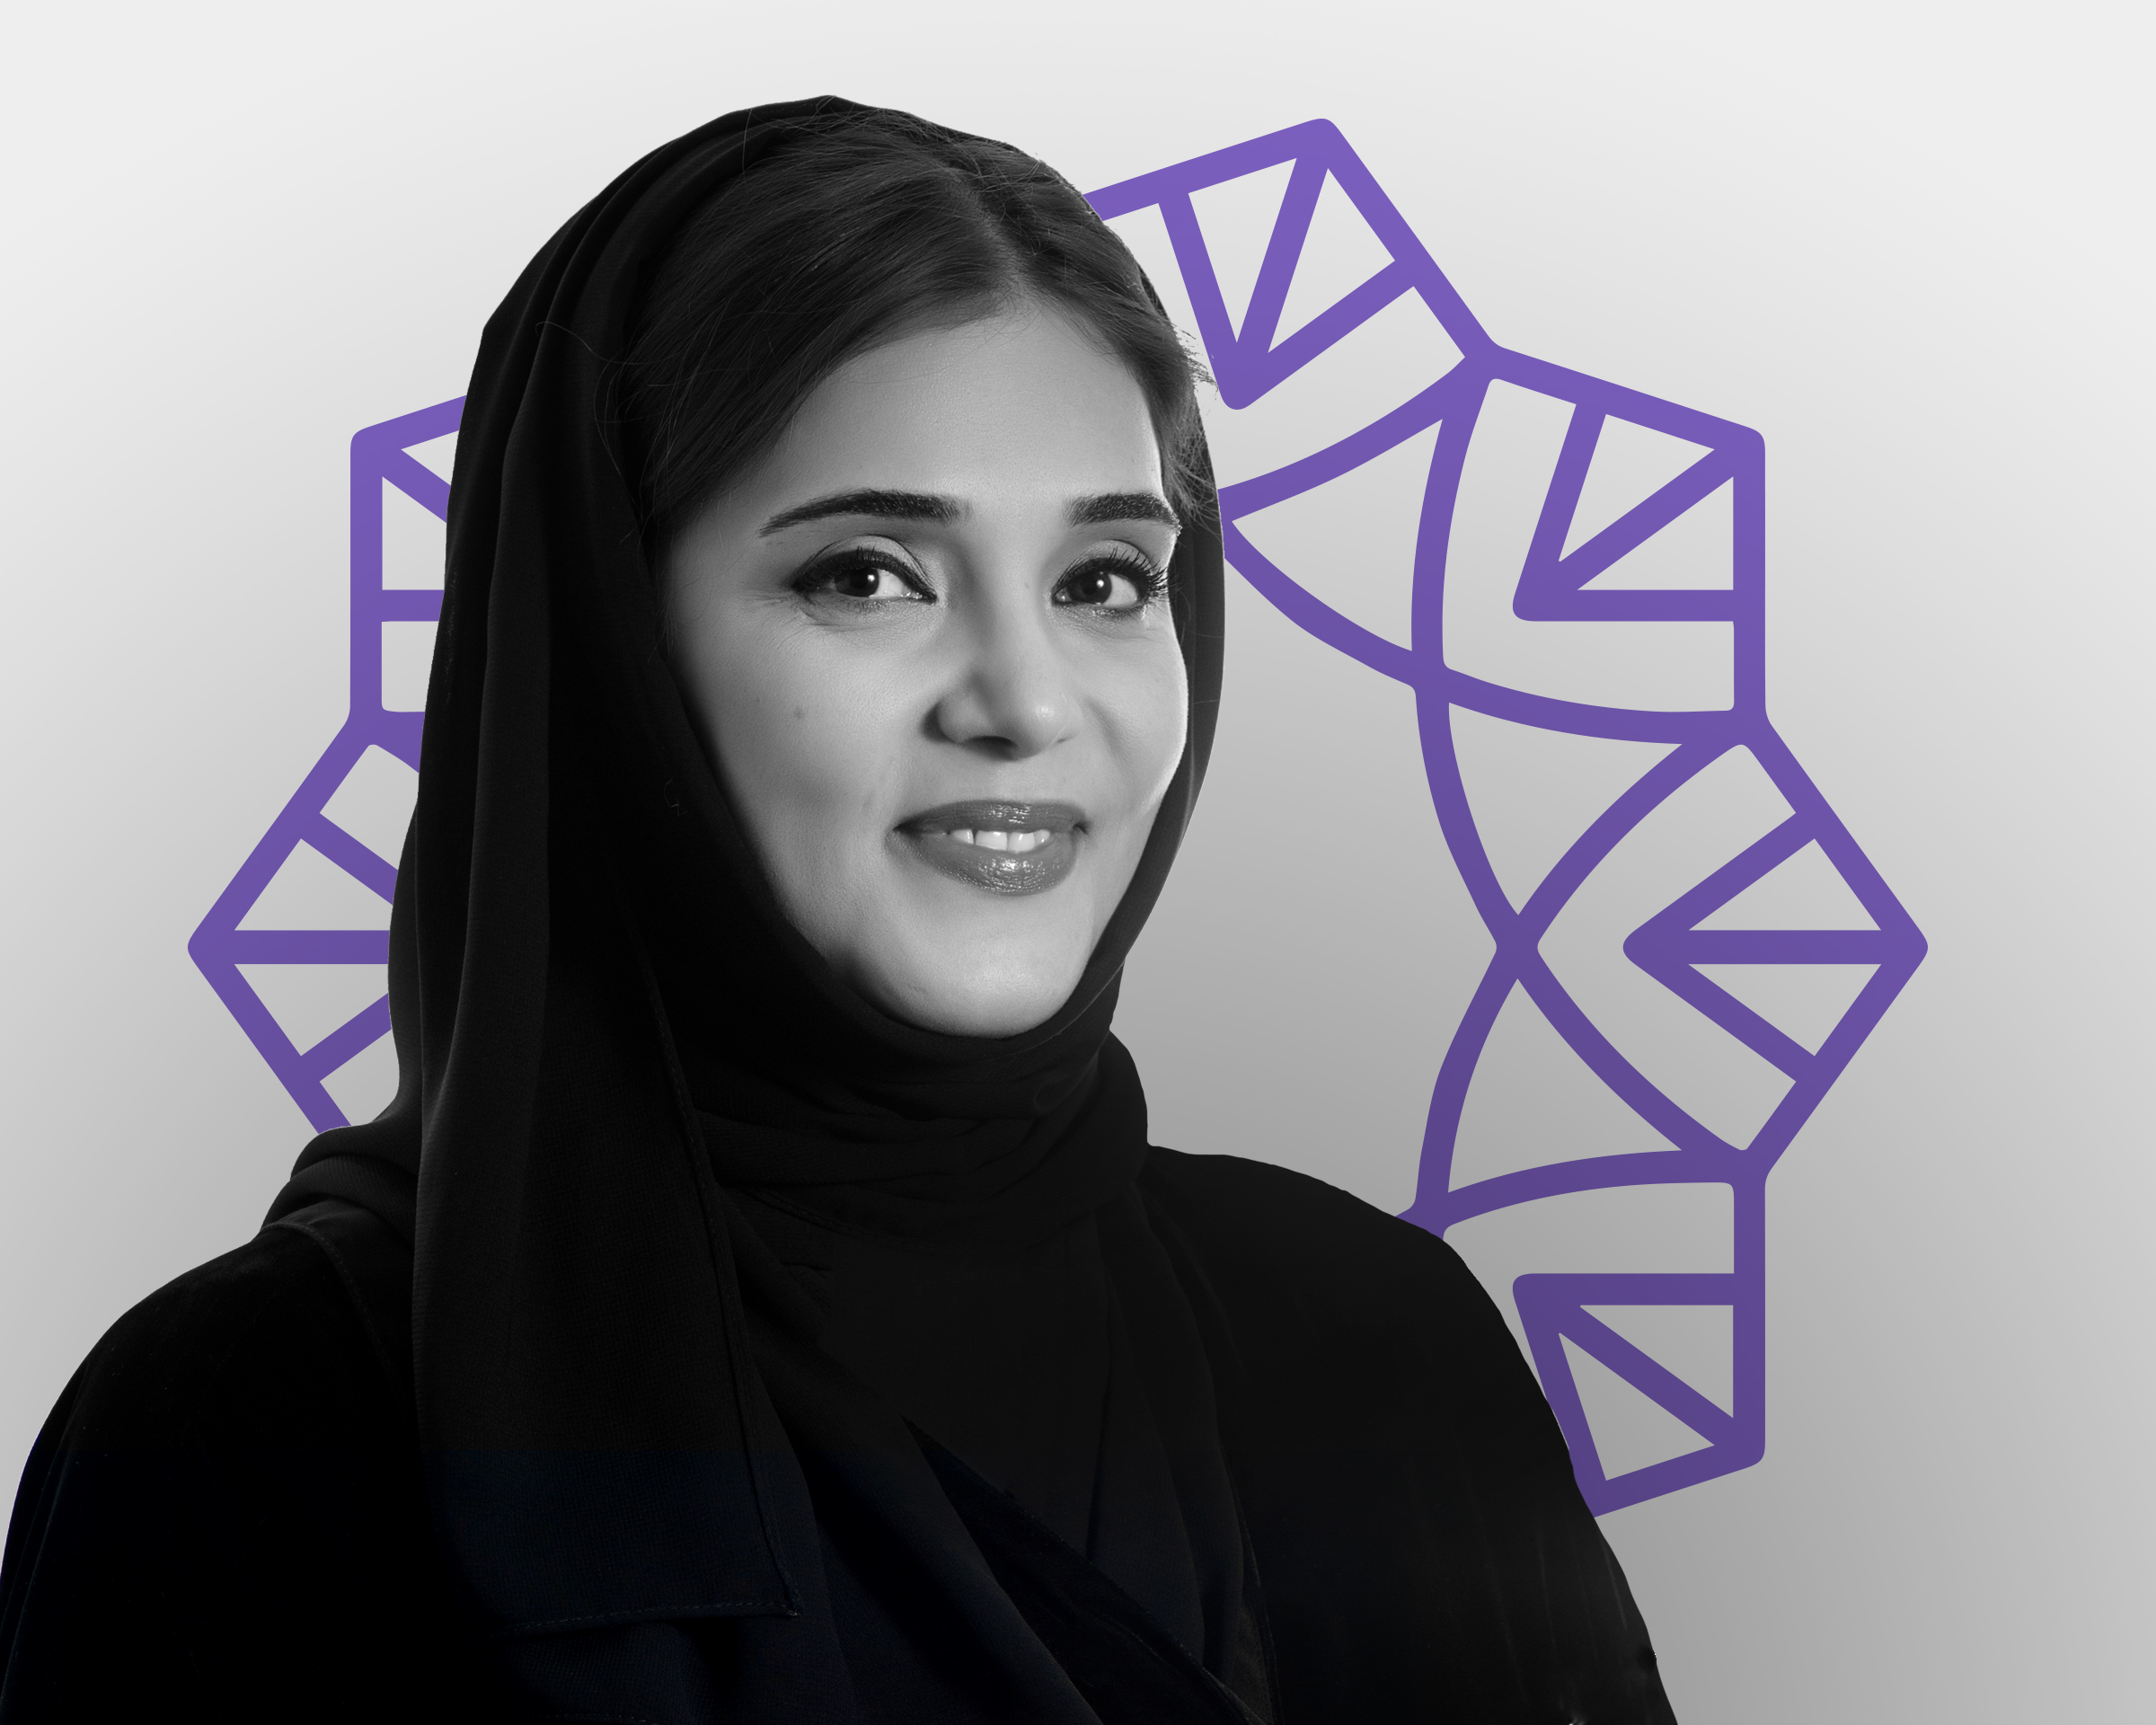 DR. AMAL AL-MALKI - Mother of two girlsFounding Dean – College of Humanities and Social Sciences - HBKU